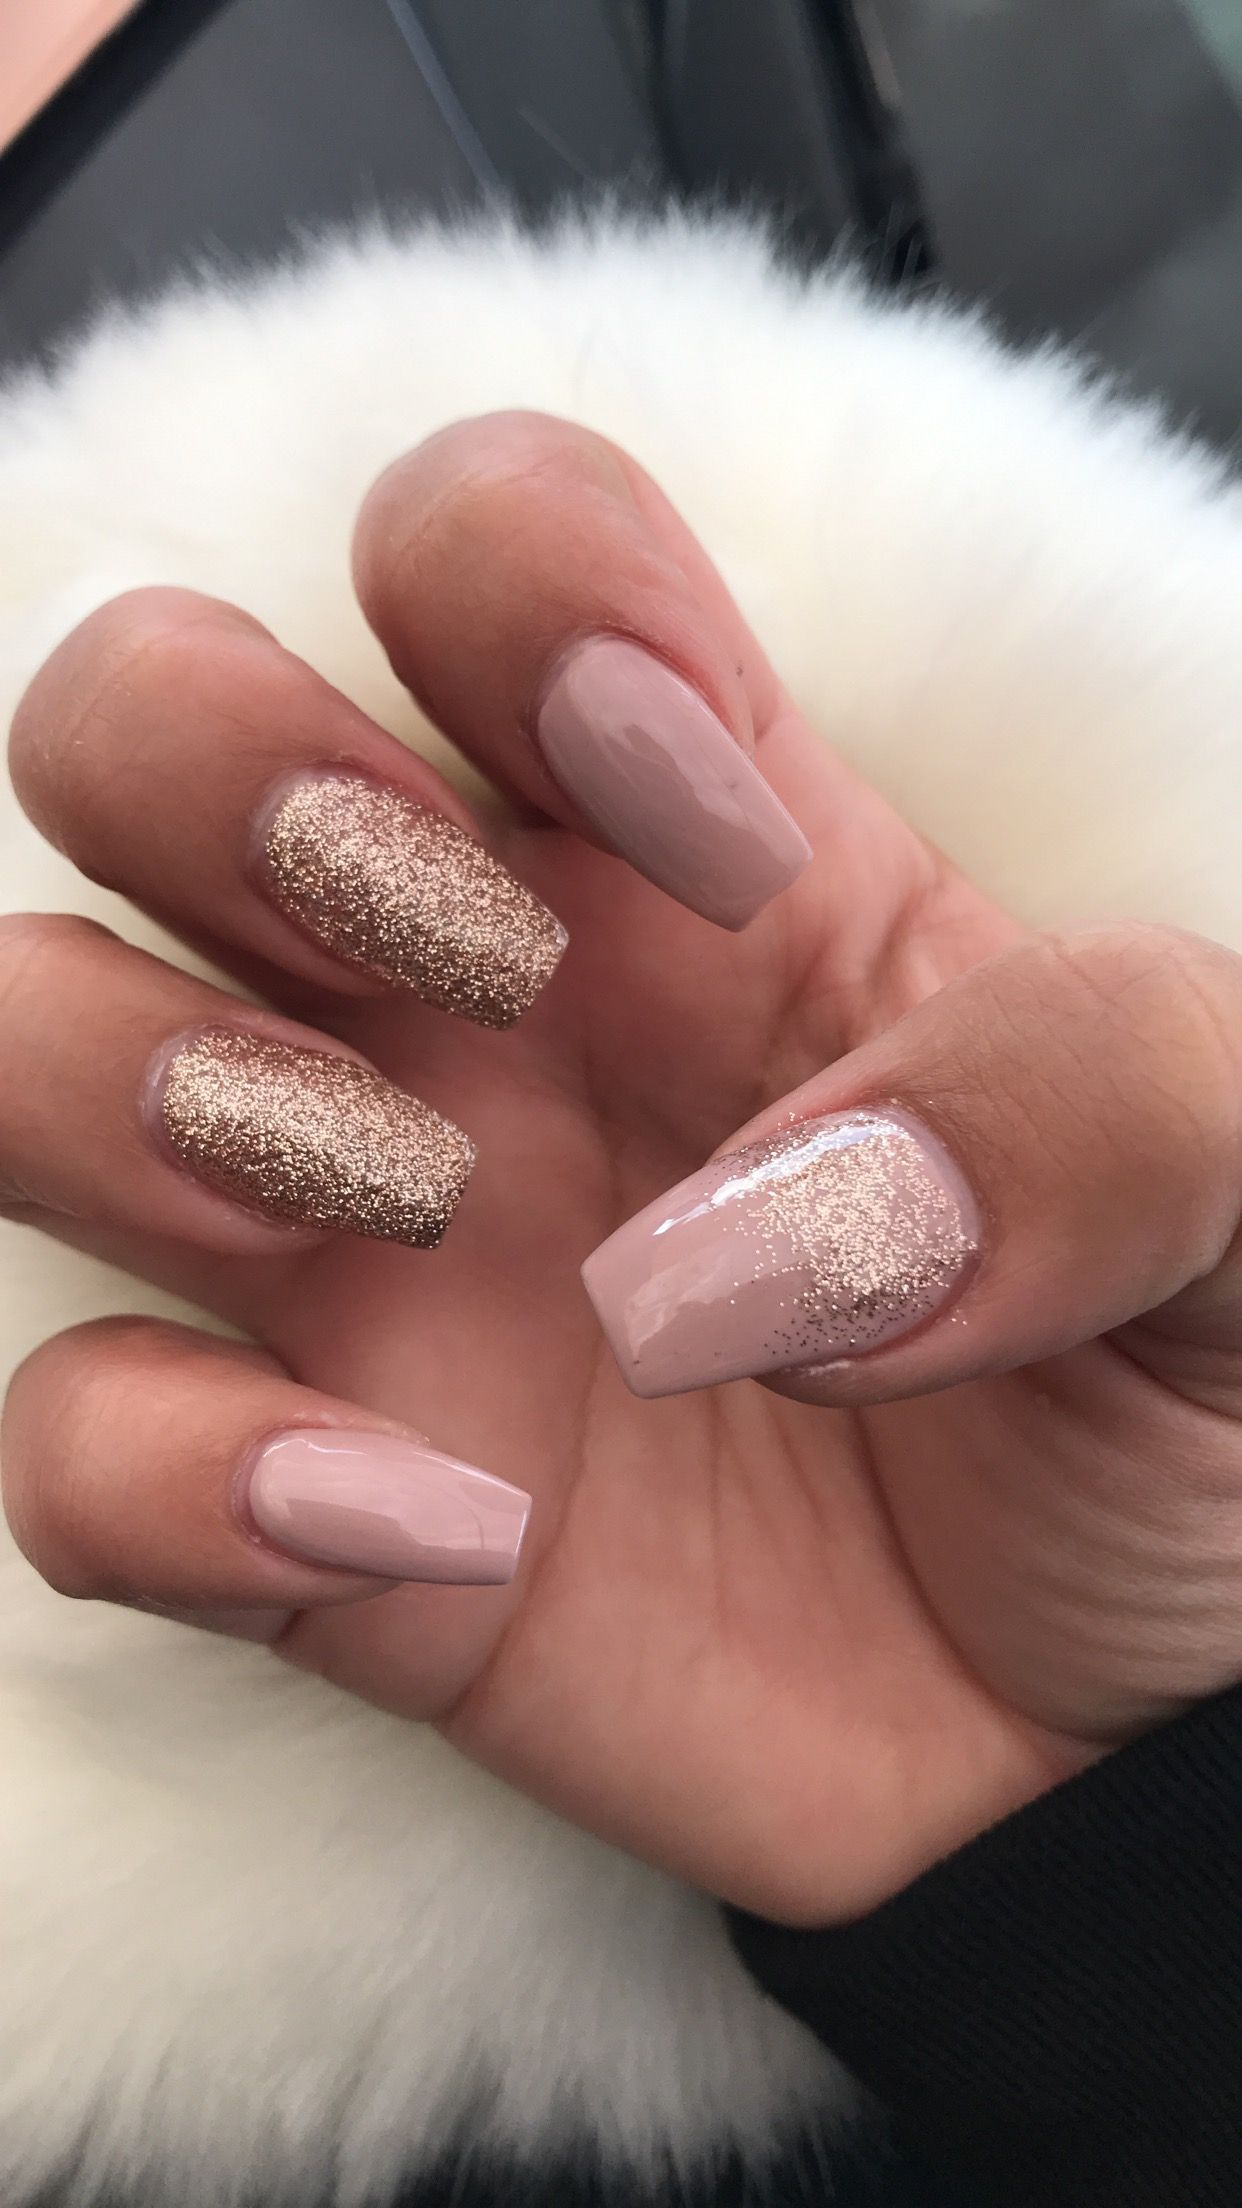 Rose gold nails ✨ Rosegoldnails in 2019